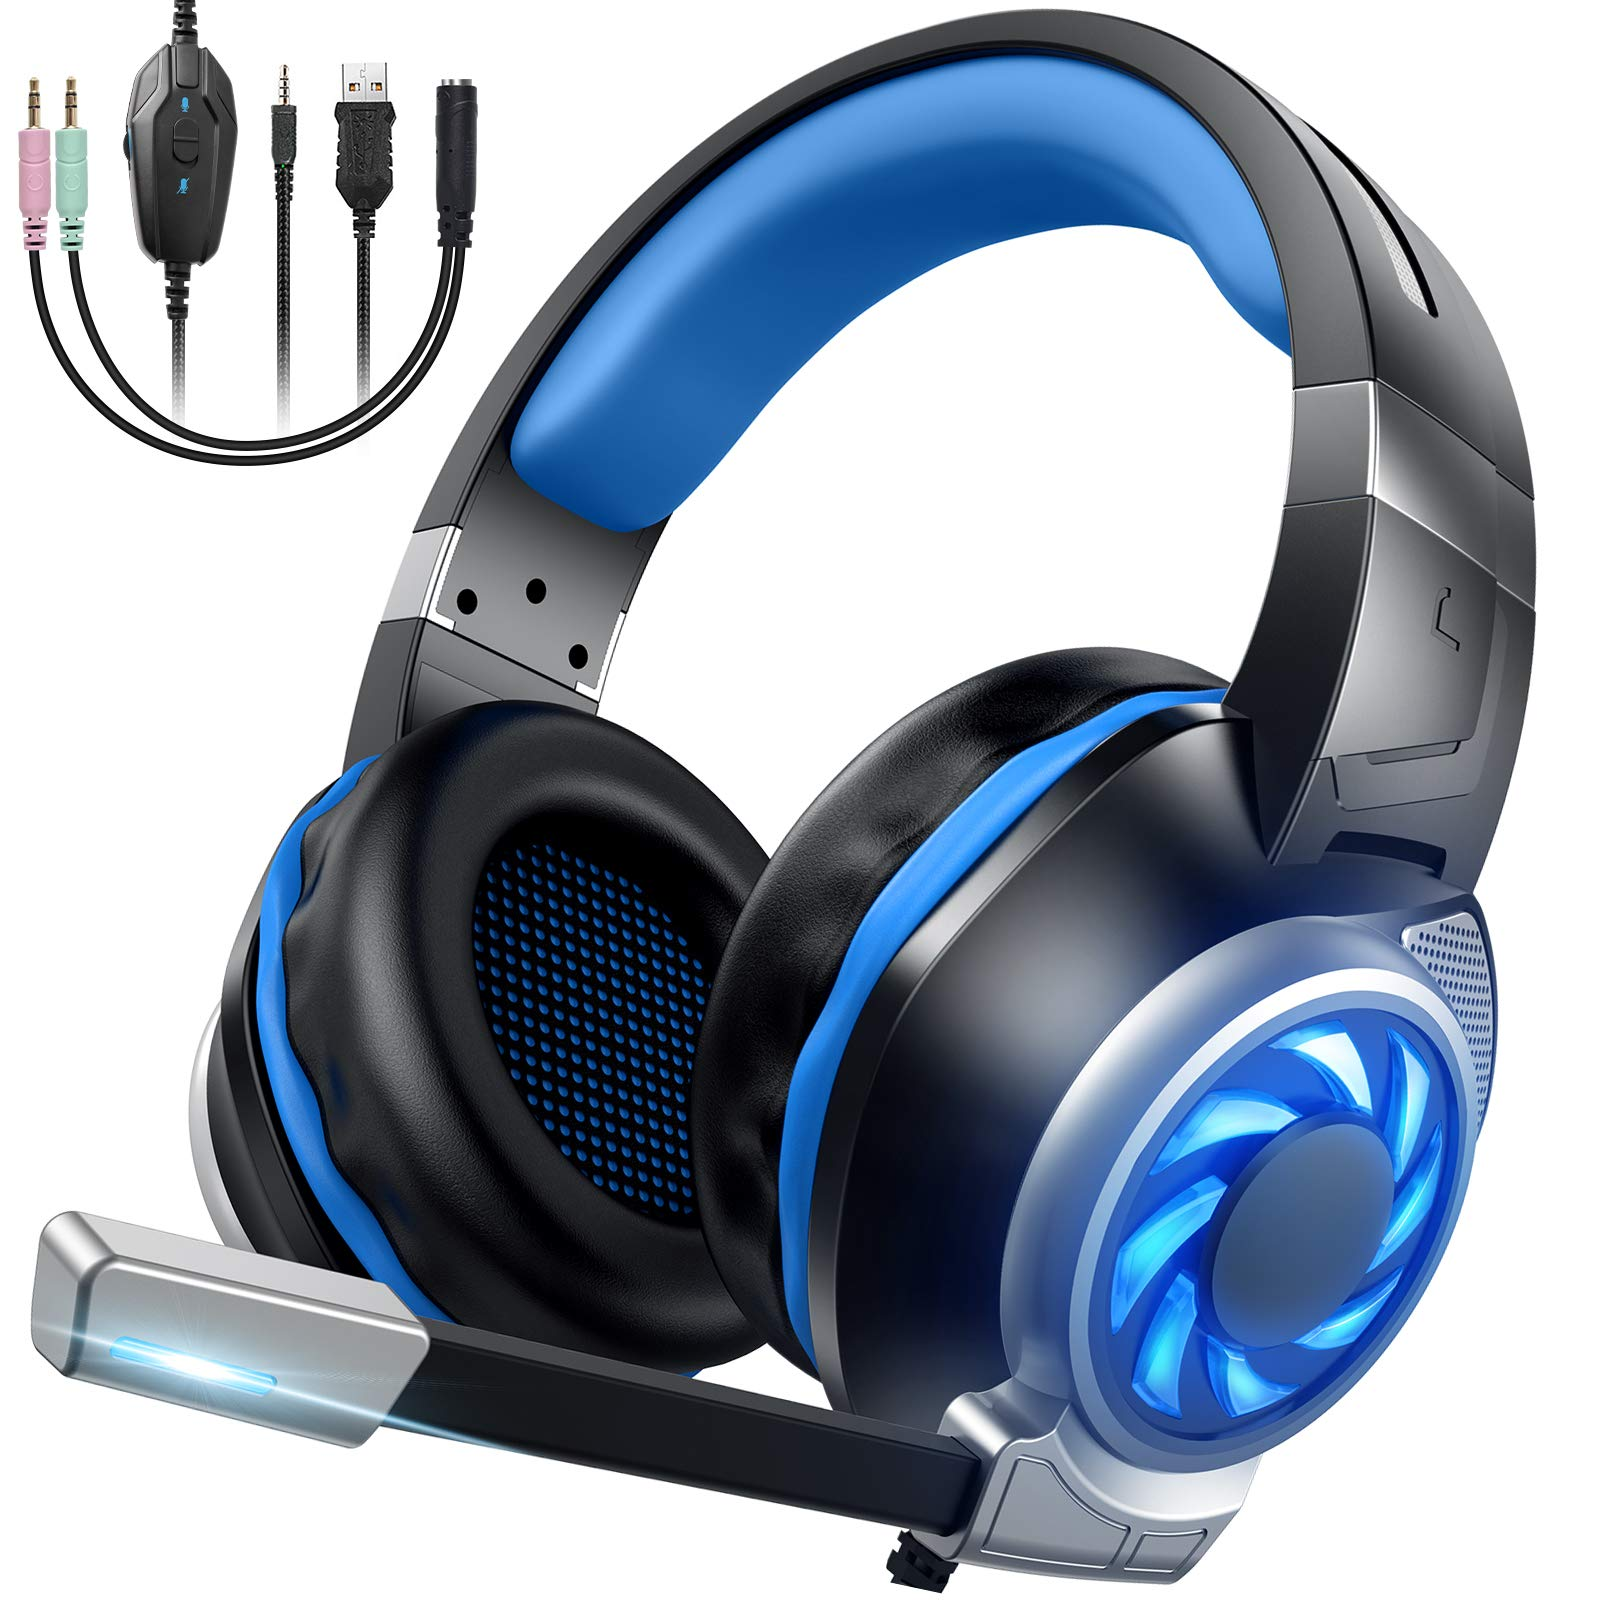 GOXMGO Gaming Headset Xbox One Headset PC Headset, Over Ear Headphones with Surround Sound, Noise Canceling Mic & LED Light, Compatible with Xbox One, PS4, PS5, PC, Switch, Laptop